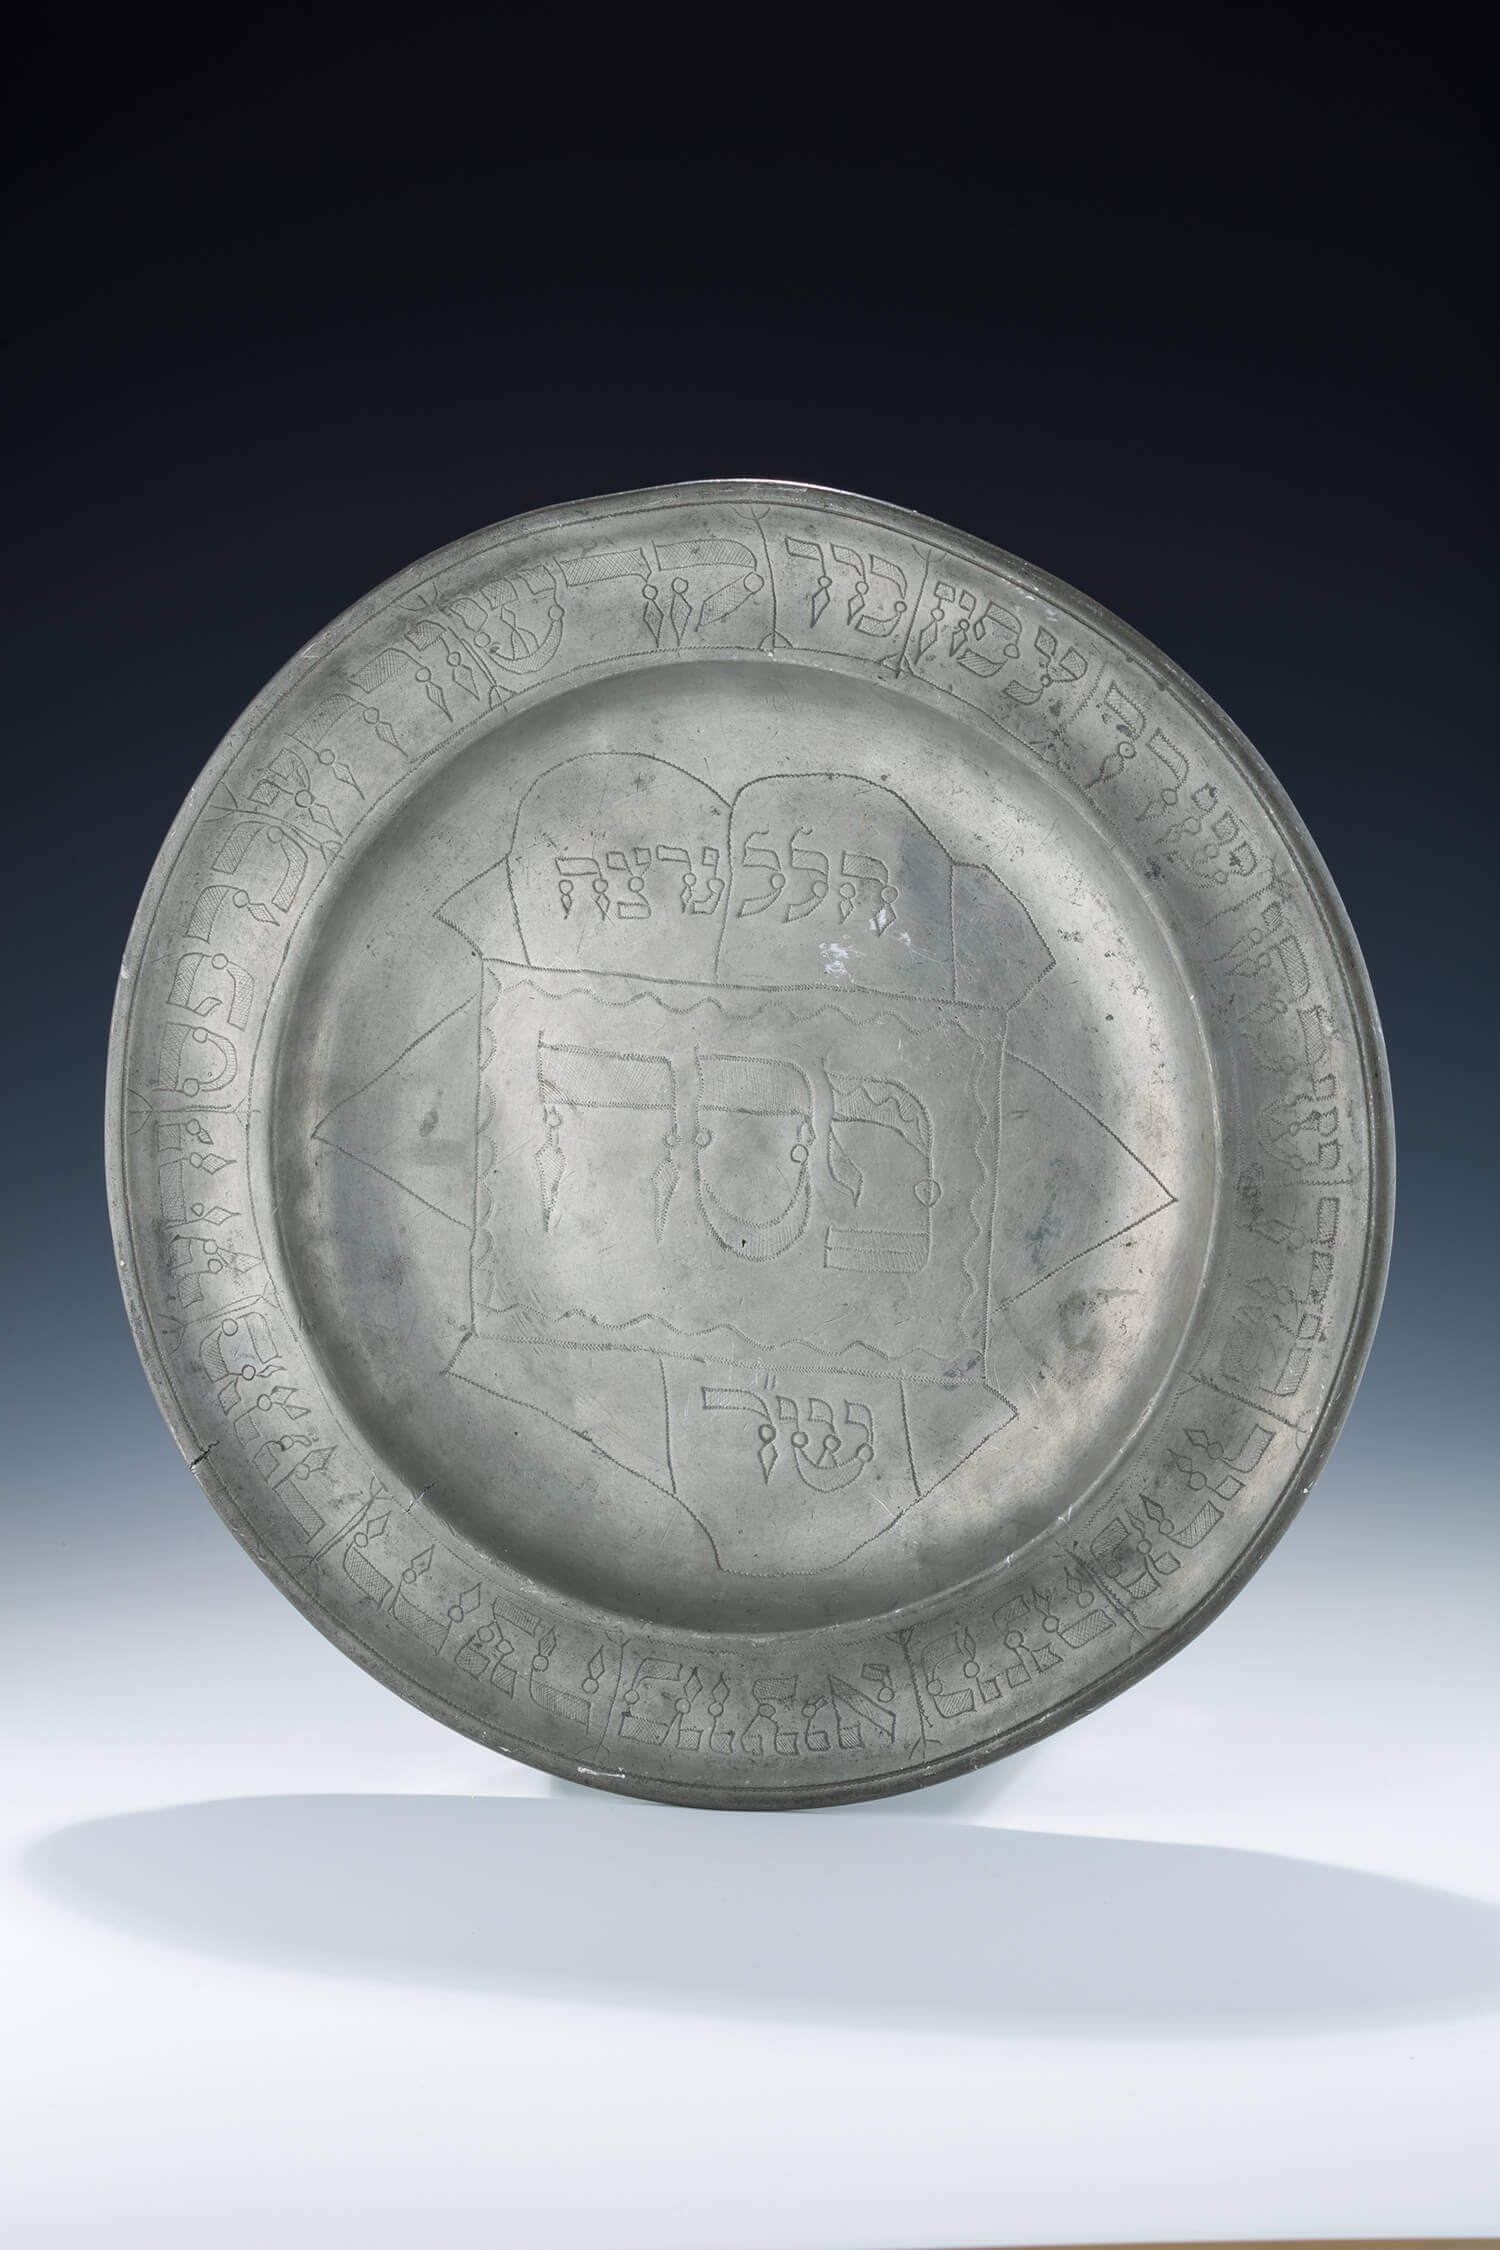 045. A VERY LARGE PEWTER SEDER PLATE